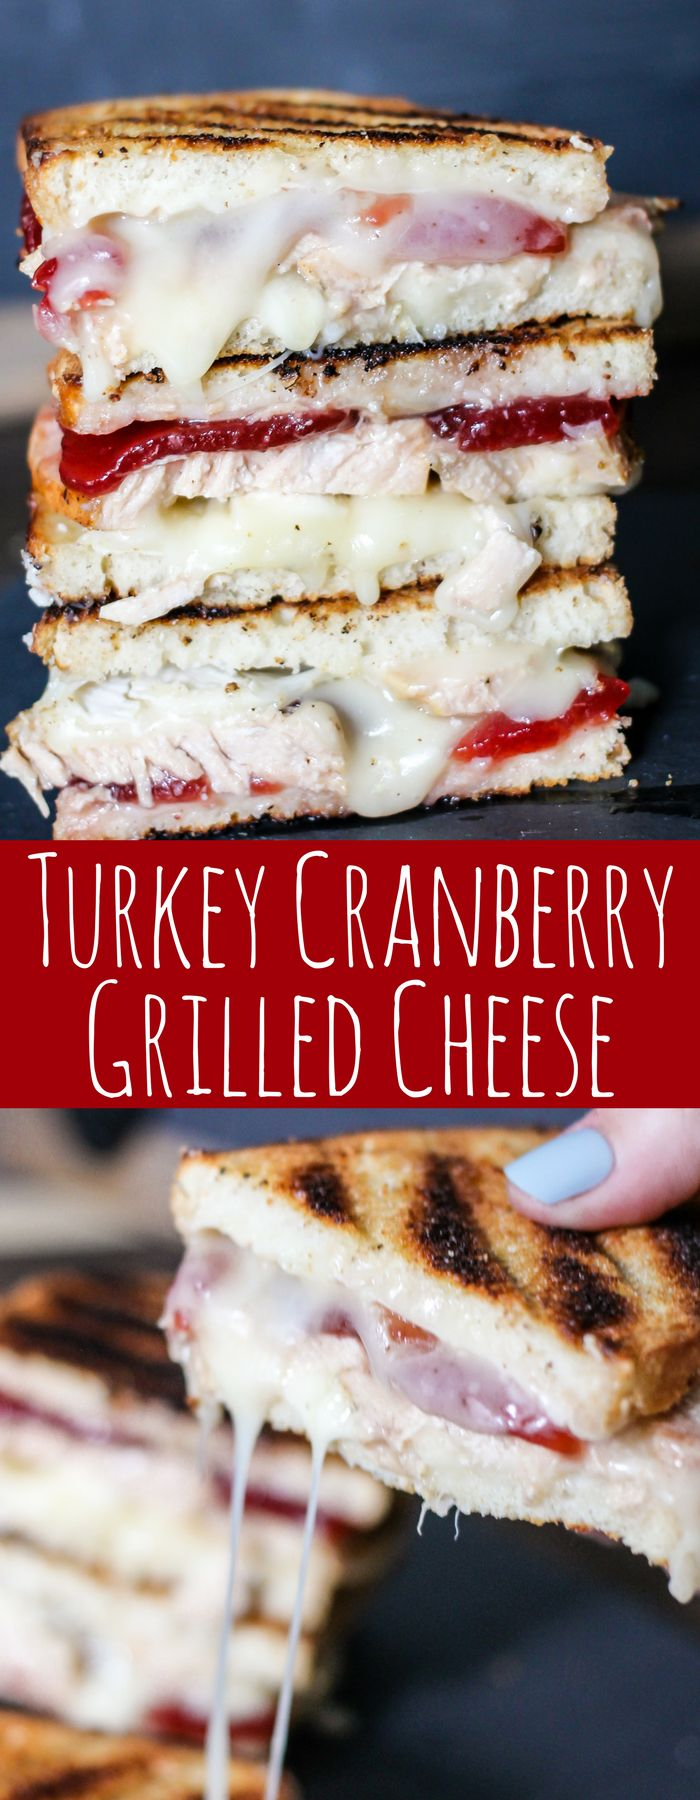 Turkey Cranberry Grilled Cheese is the ULTIMATE Thanksgiving leftovers meal! Turkey, cranberry sauce, and two cheeses are combined for this tasty sandwich! http://eatdojo.com/healthy-recipes-salads-haters/